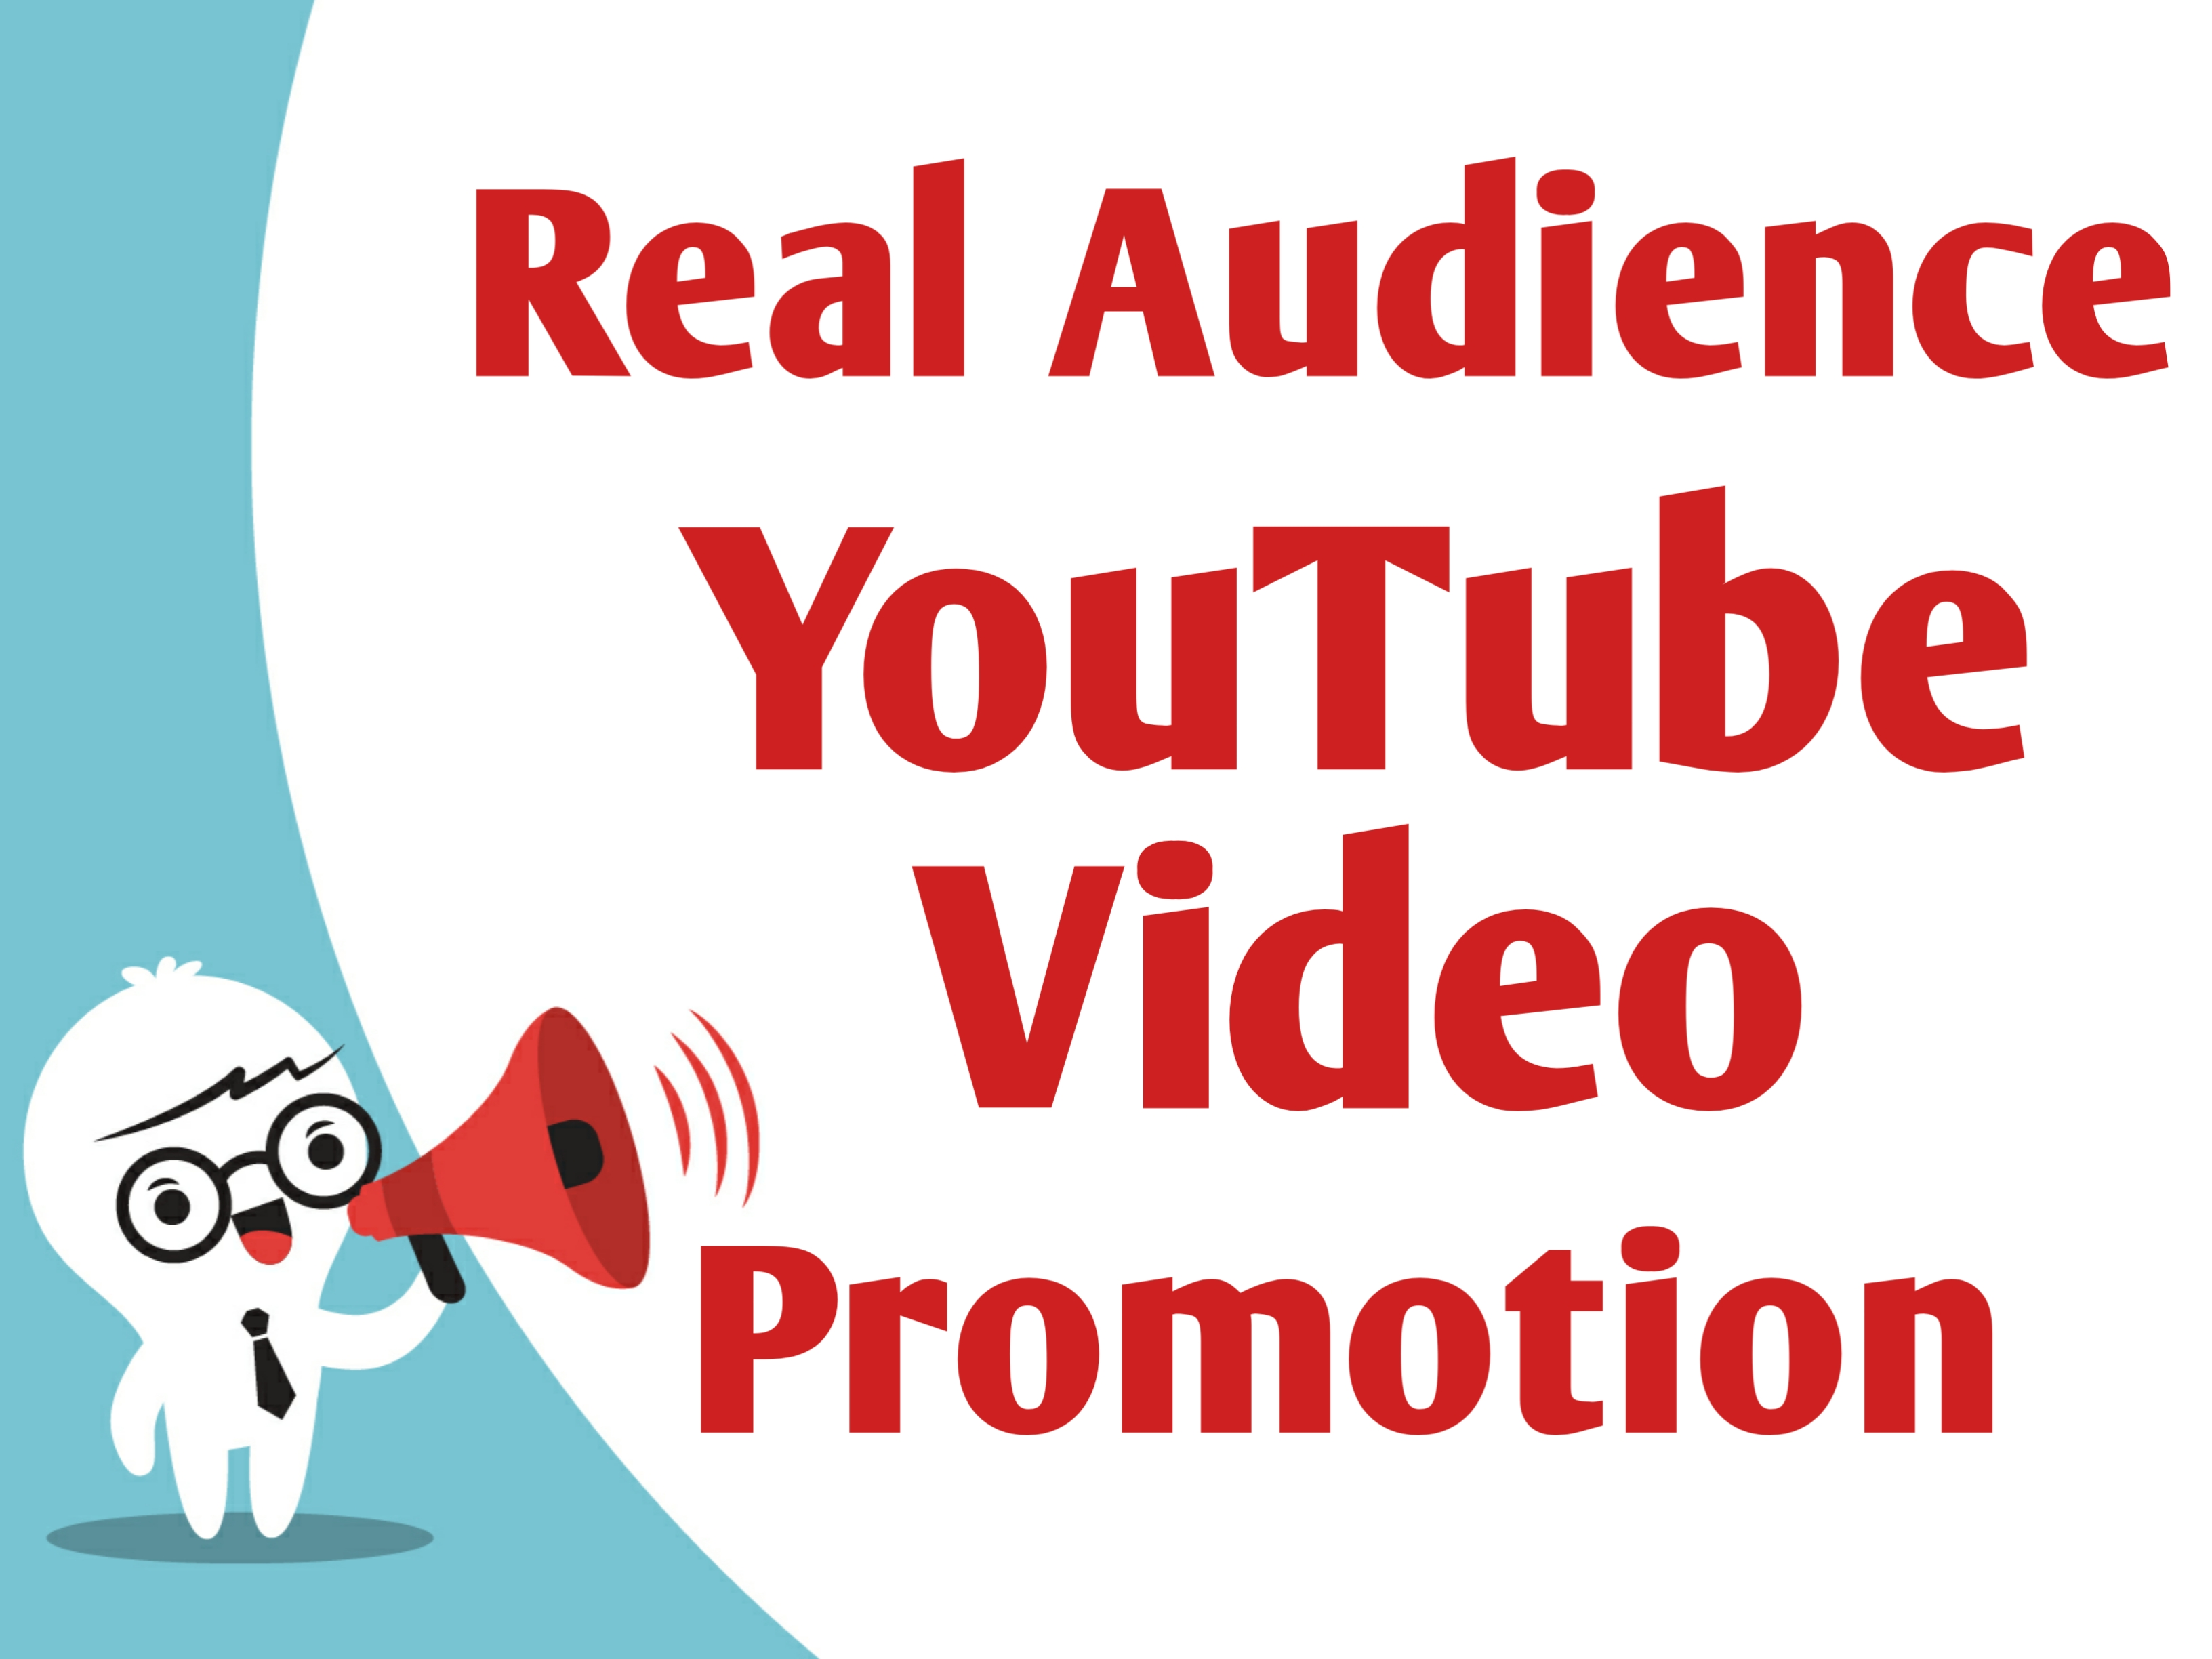 Fast Audience YouTube Video Promotion With Instant Starting